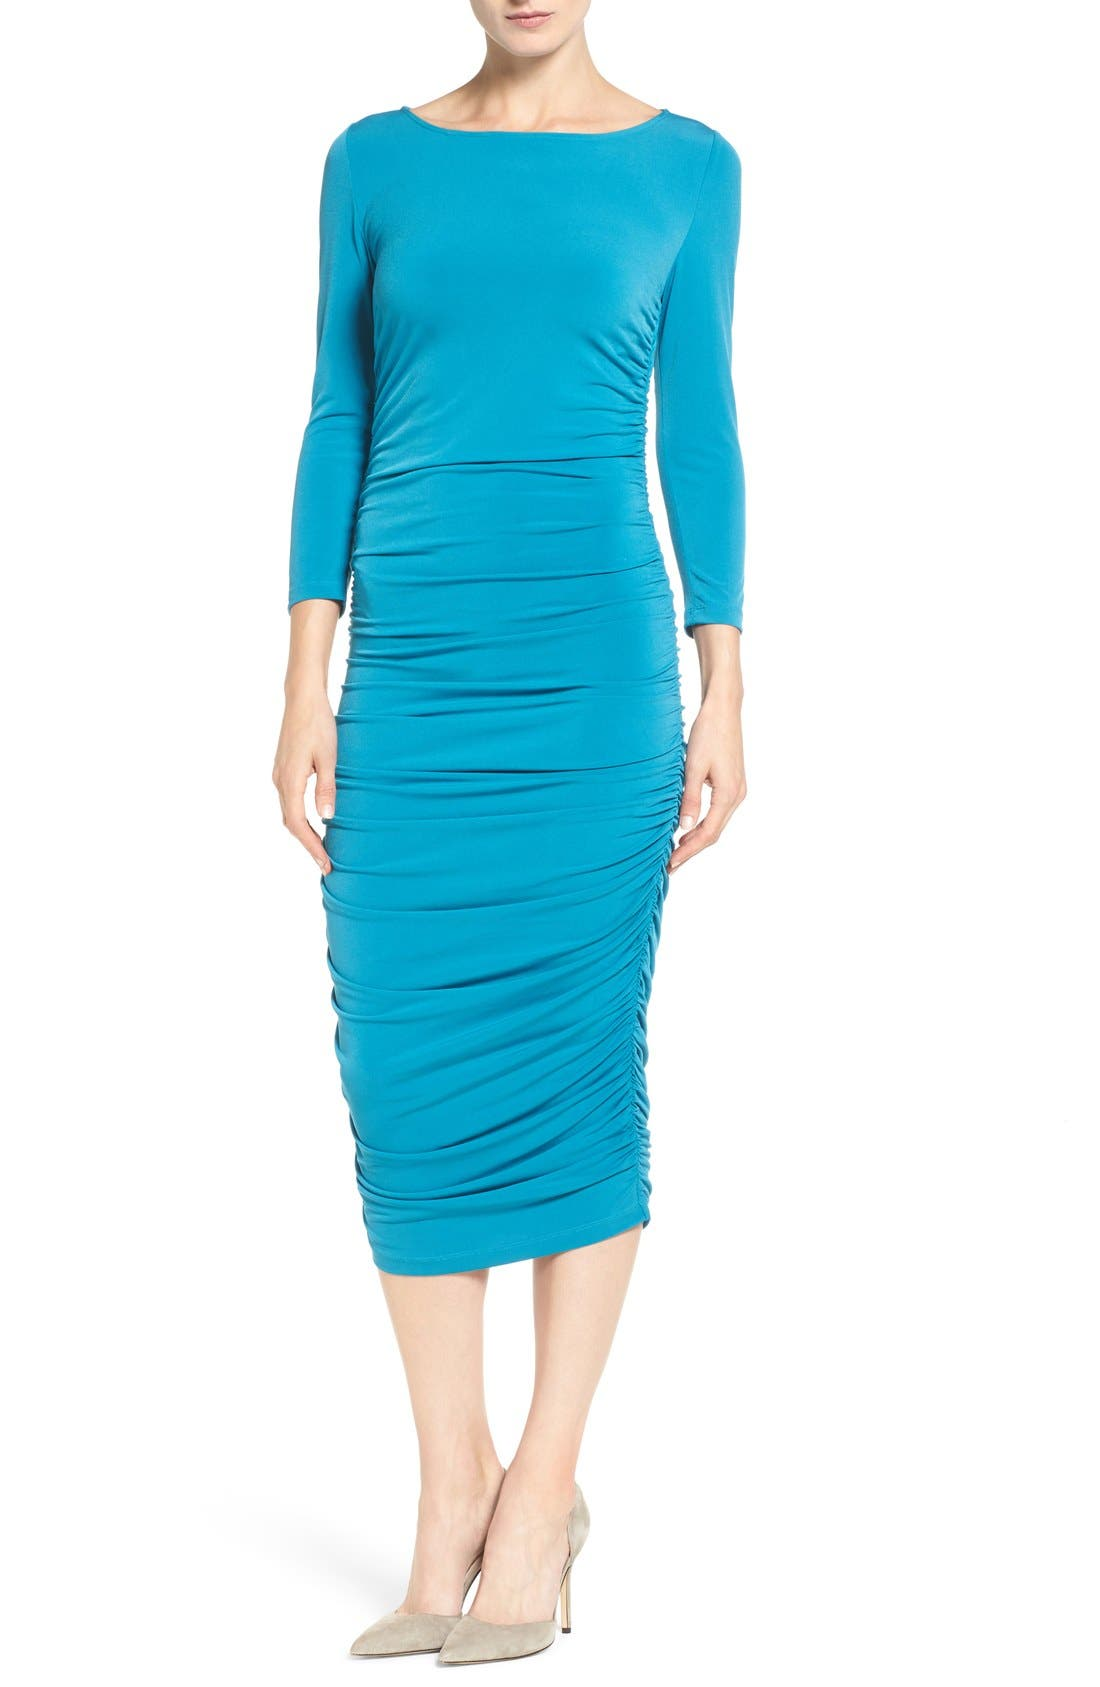 Catherine Catherine Malandrino 'Lansbury' Ruched Sheath Dress